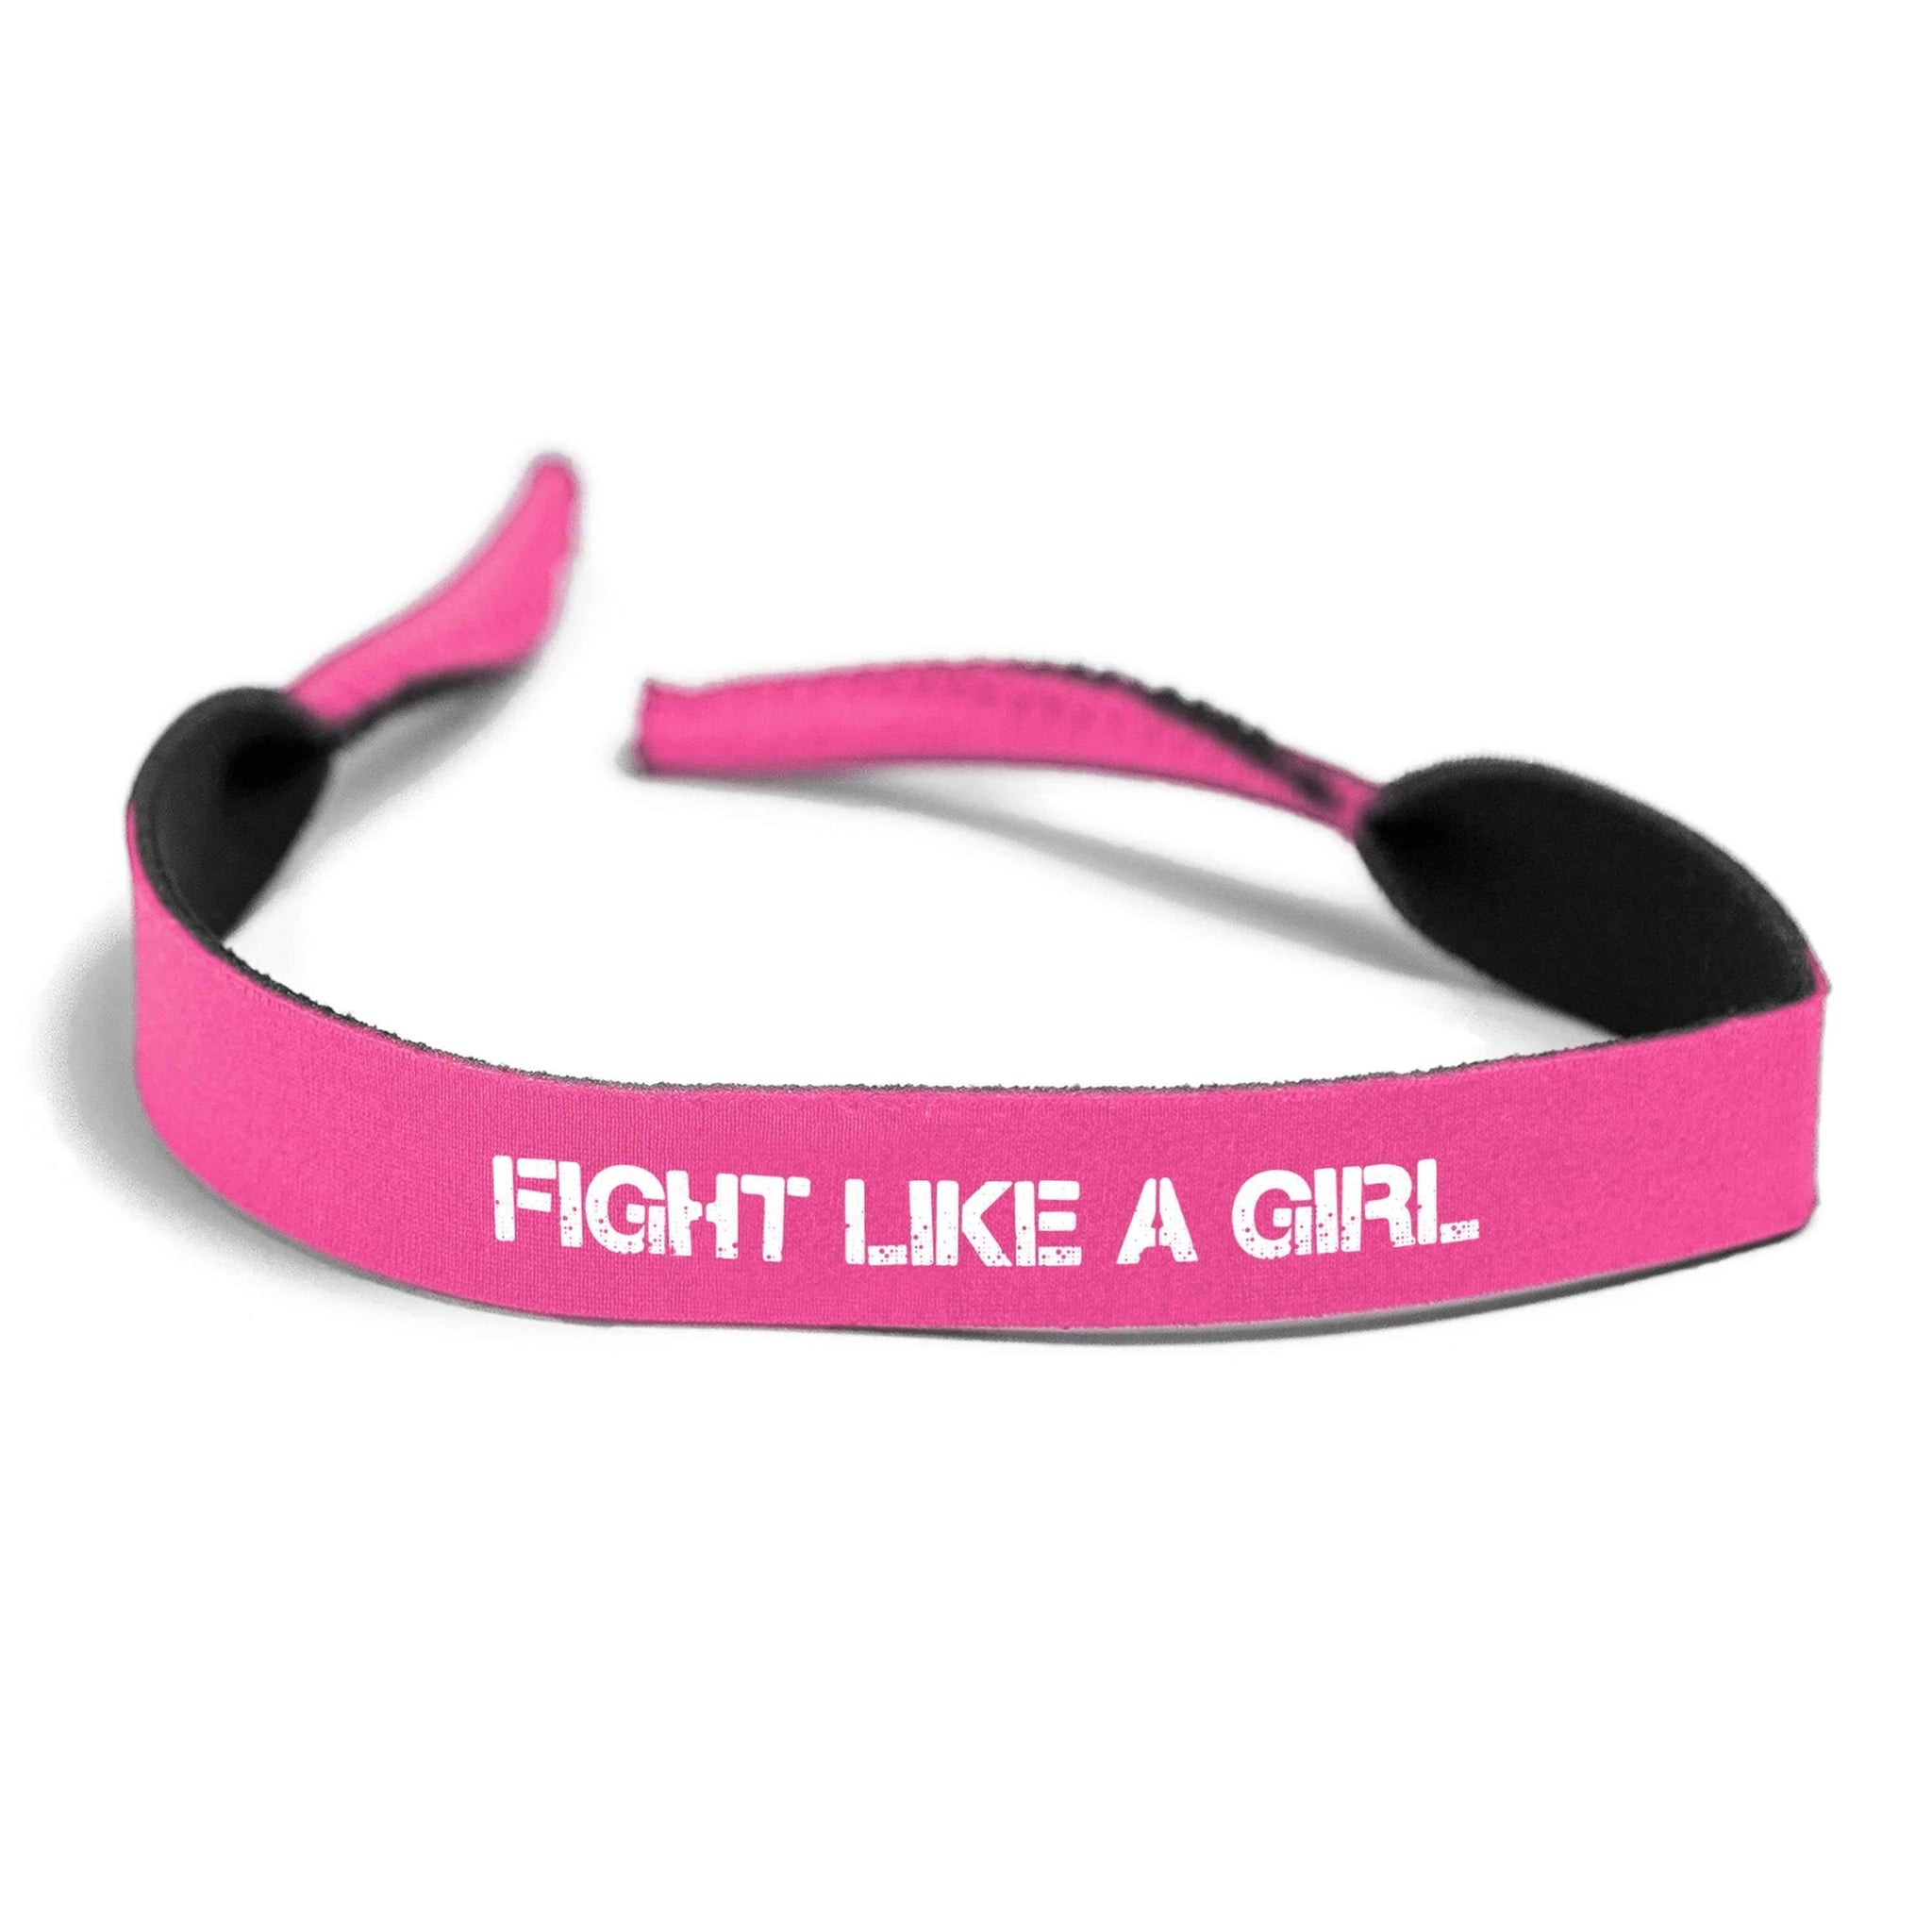 Breast Cancer Awareness Neoprene Sunglasses Strap